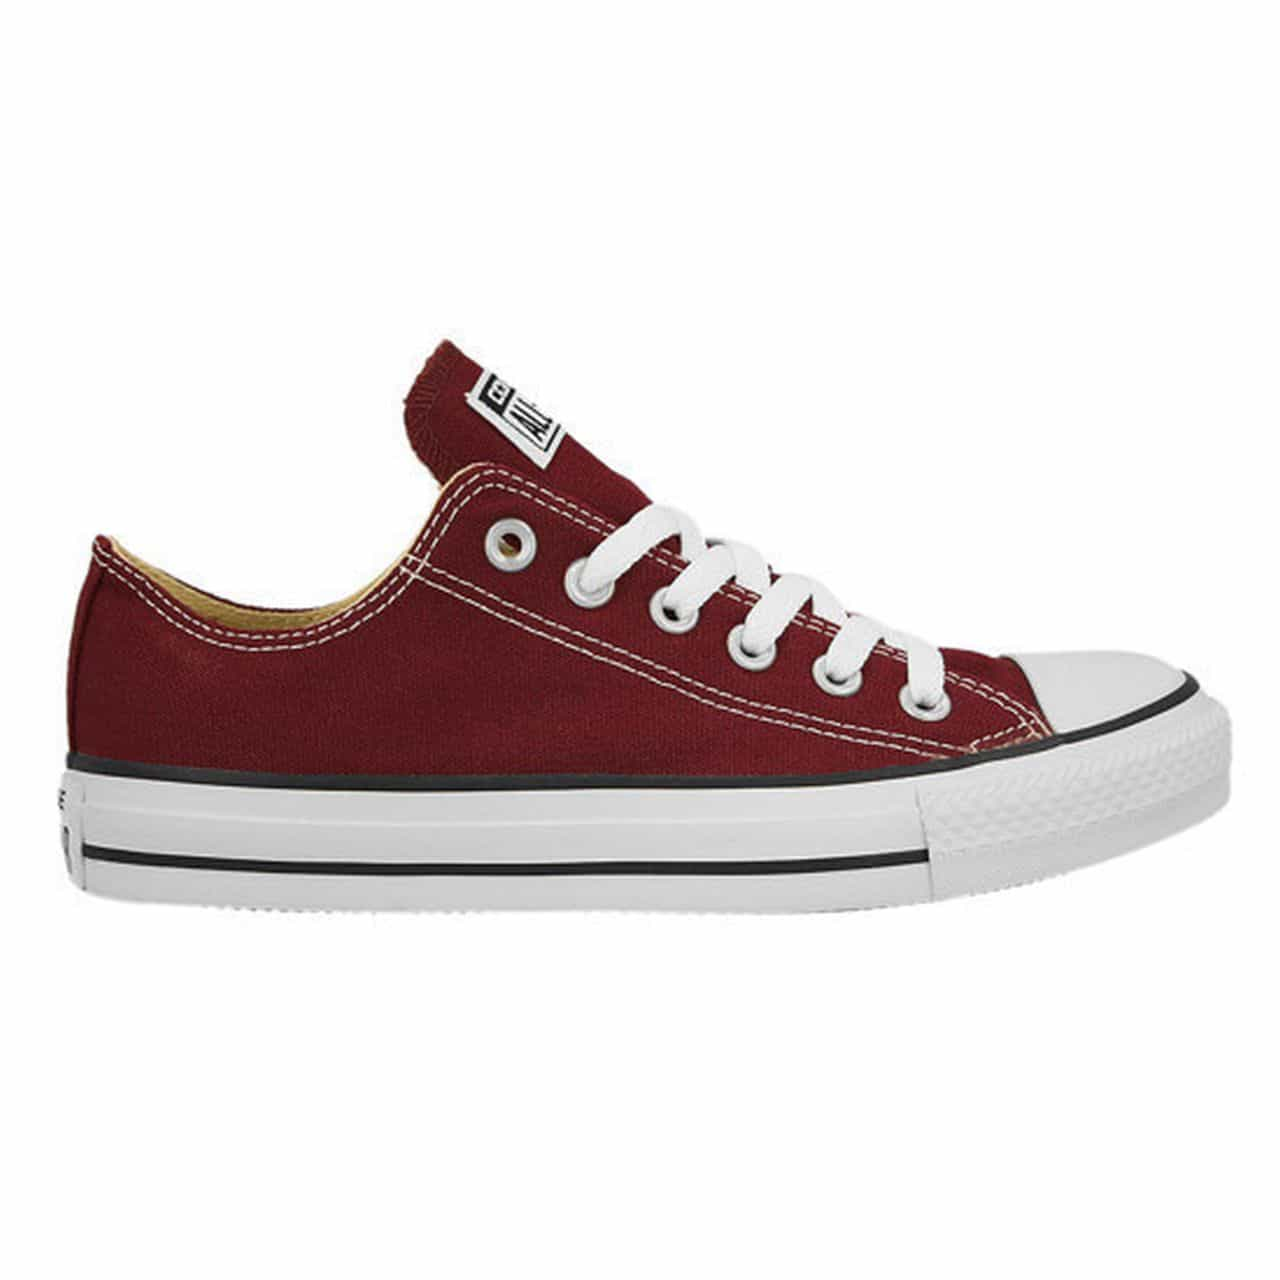 TENISI ORIGINALI CONVERSE ALL STAR OX - M9691C